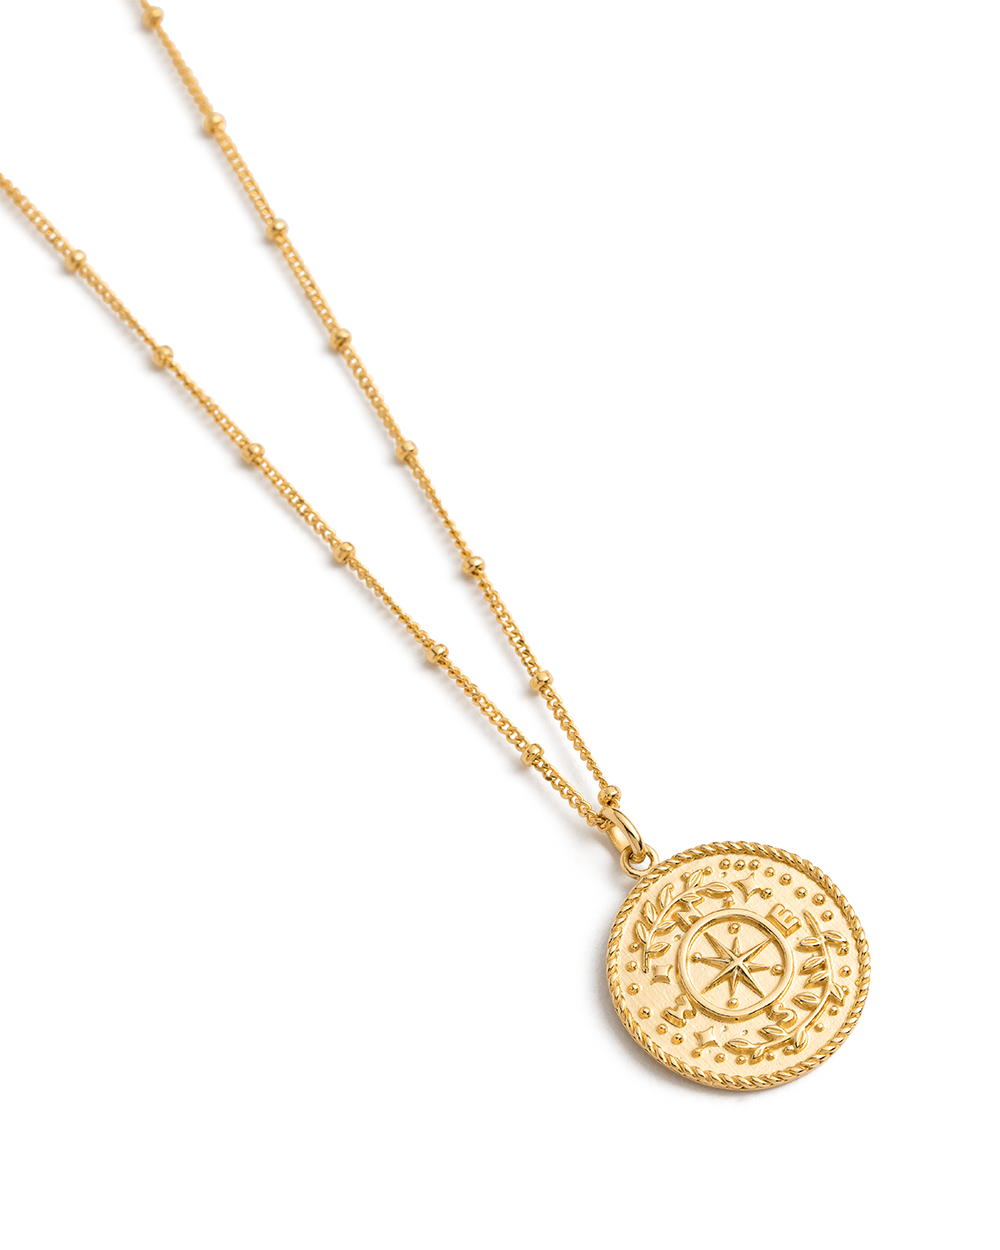 TREASURE COIN NECKLACE (18K-GOLD-VERMEIL) 02